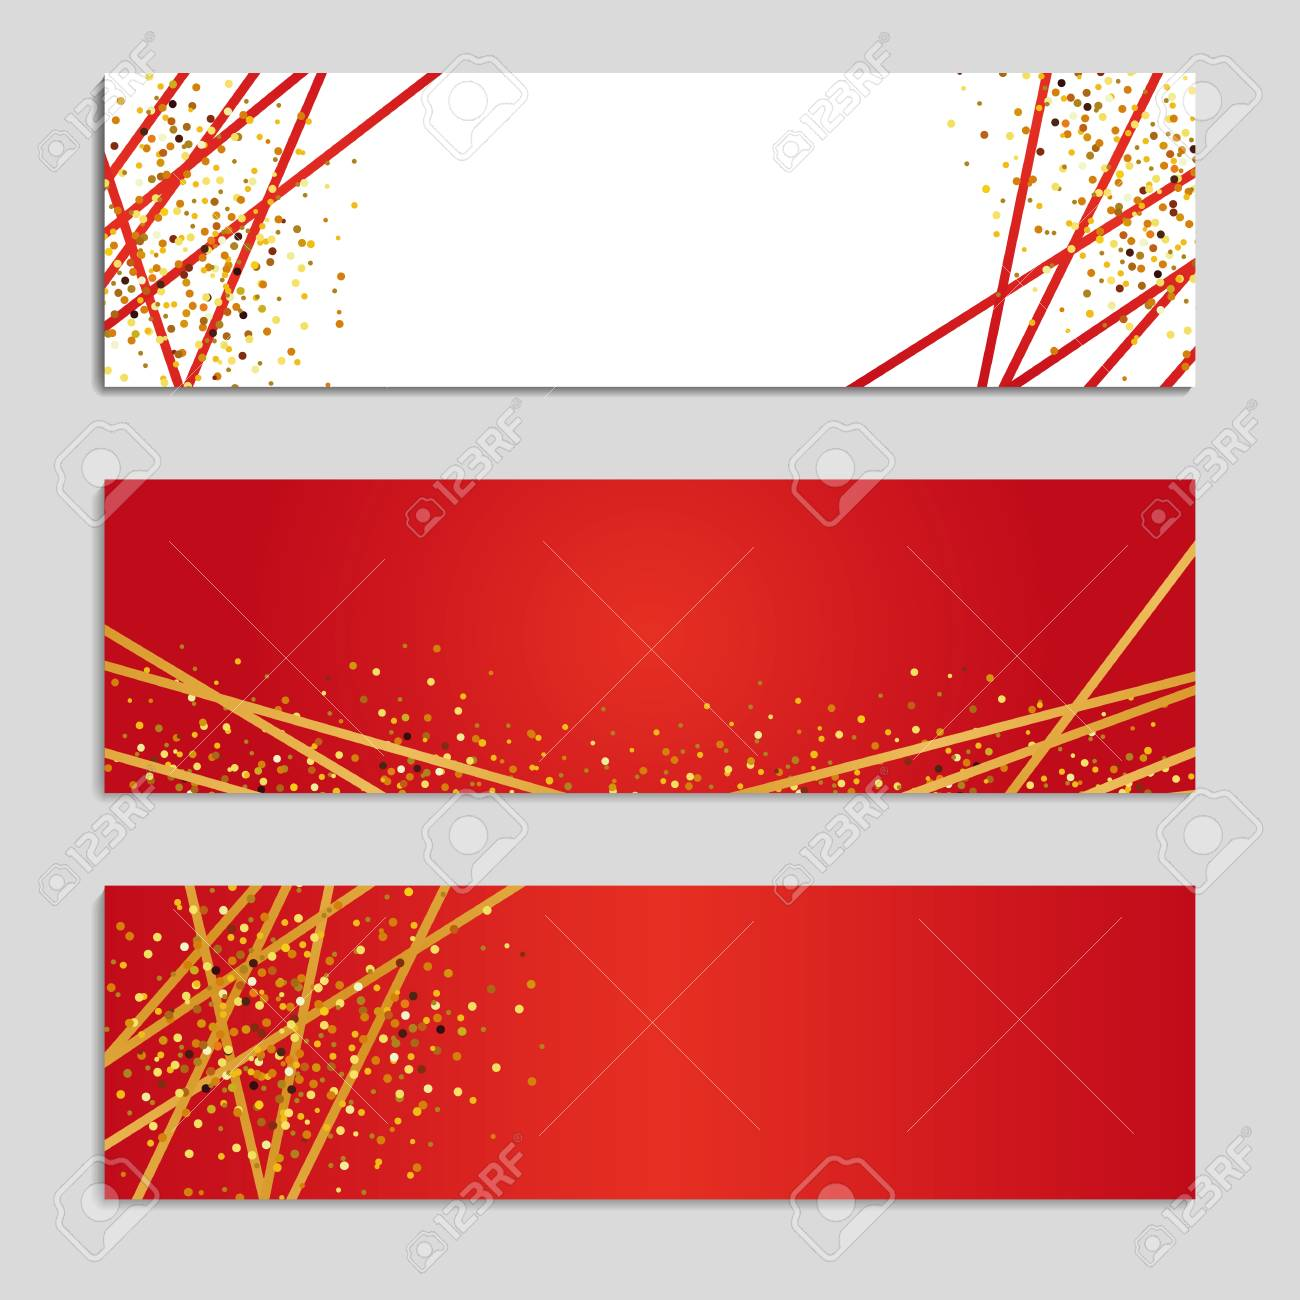 Gold Line Red Banners. Golden Glitter Shine Sparkles Invitation ...